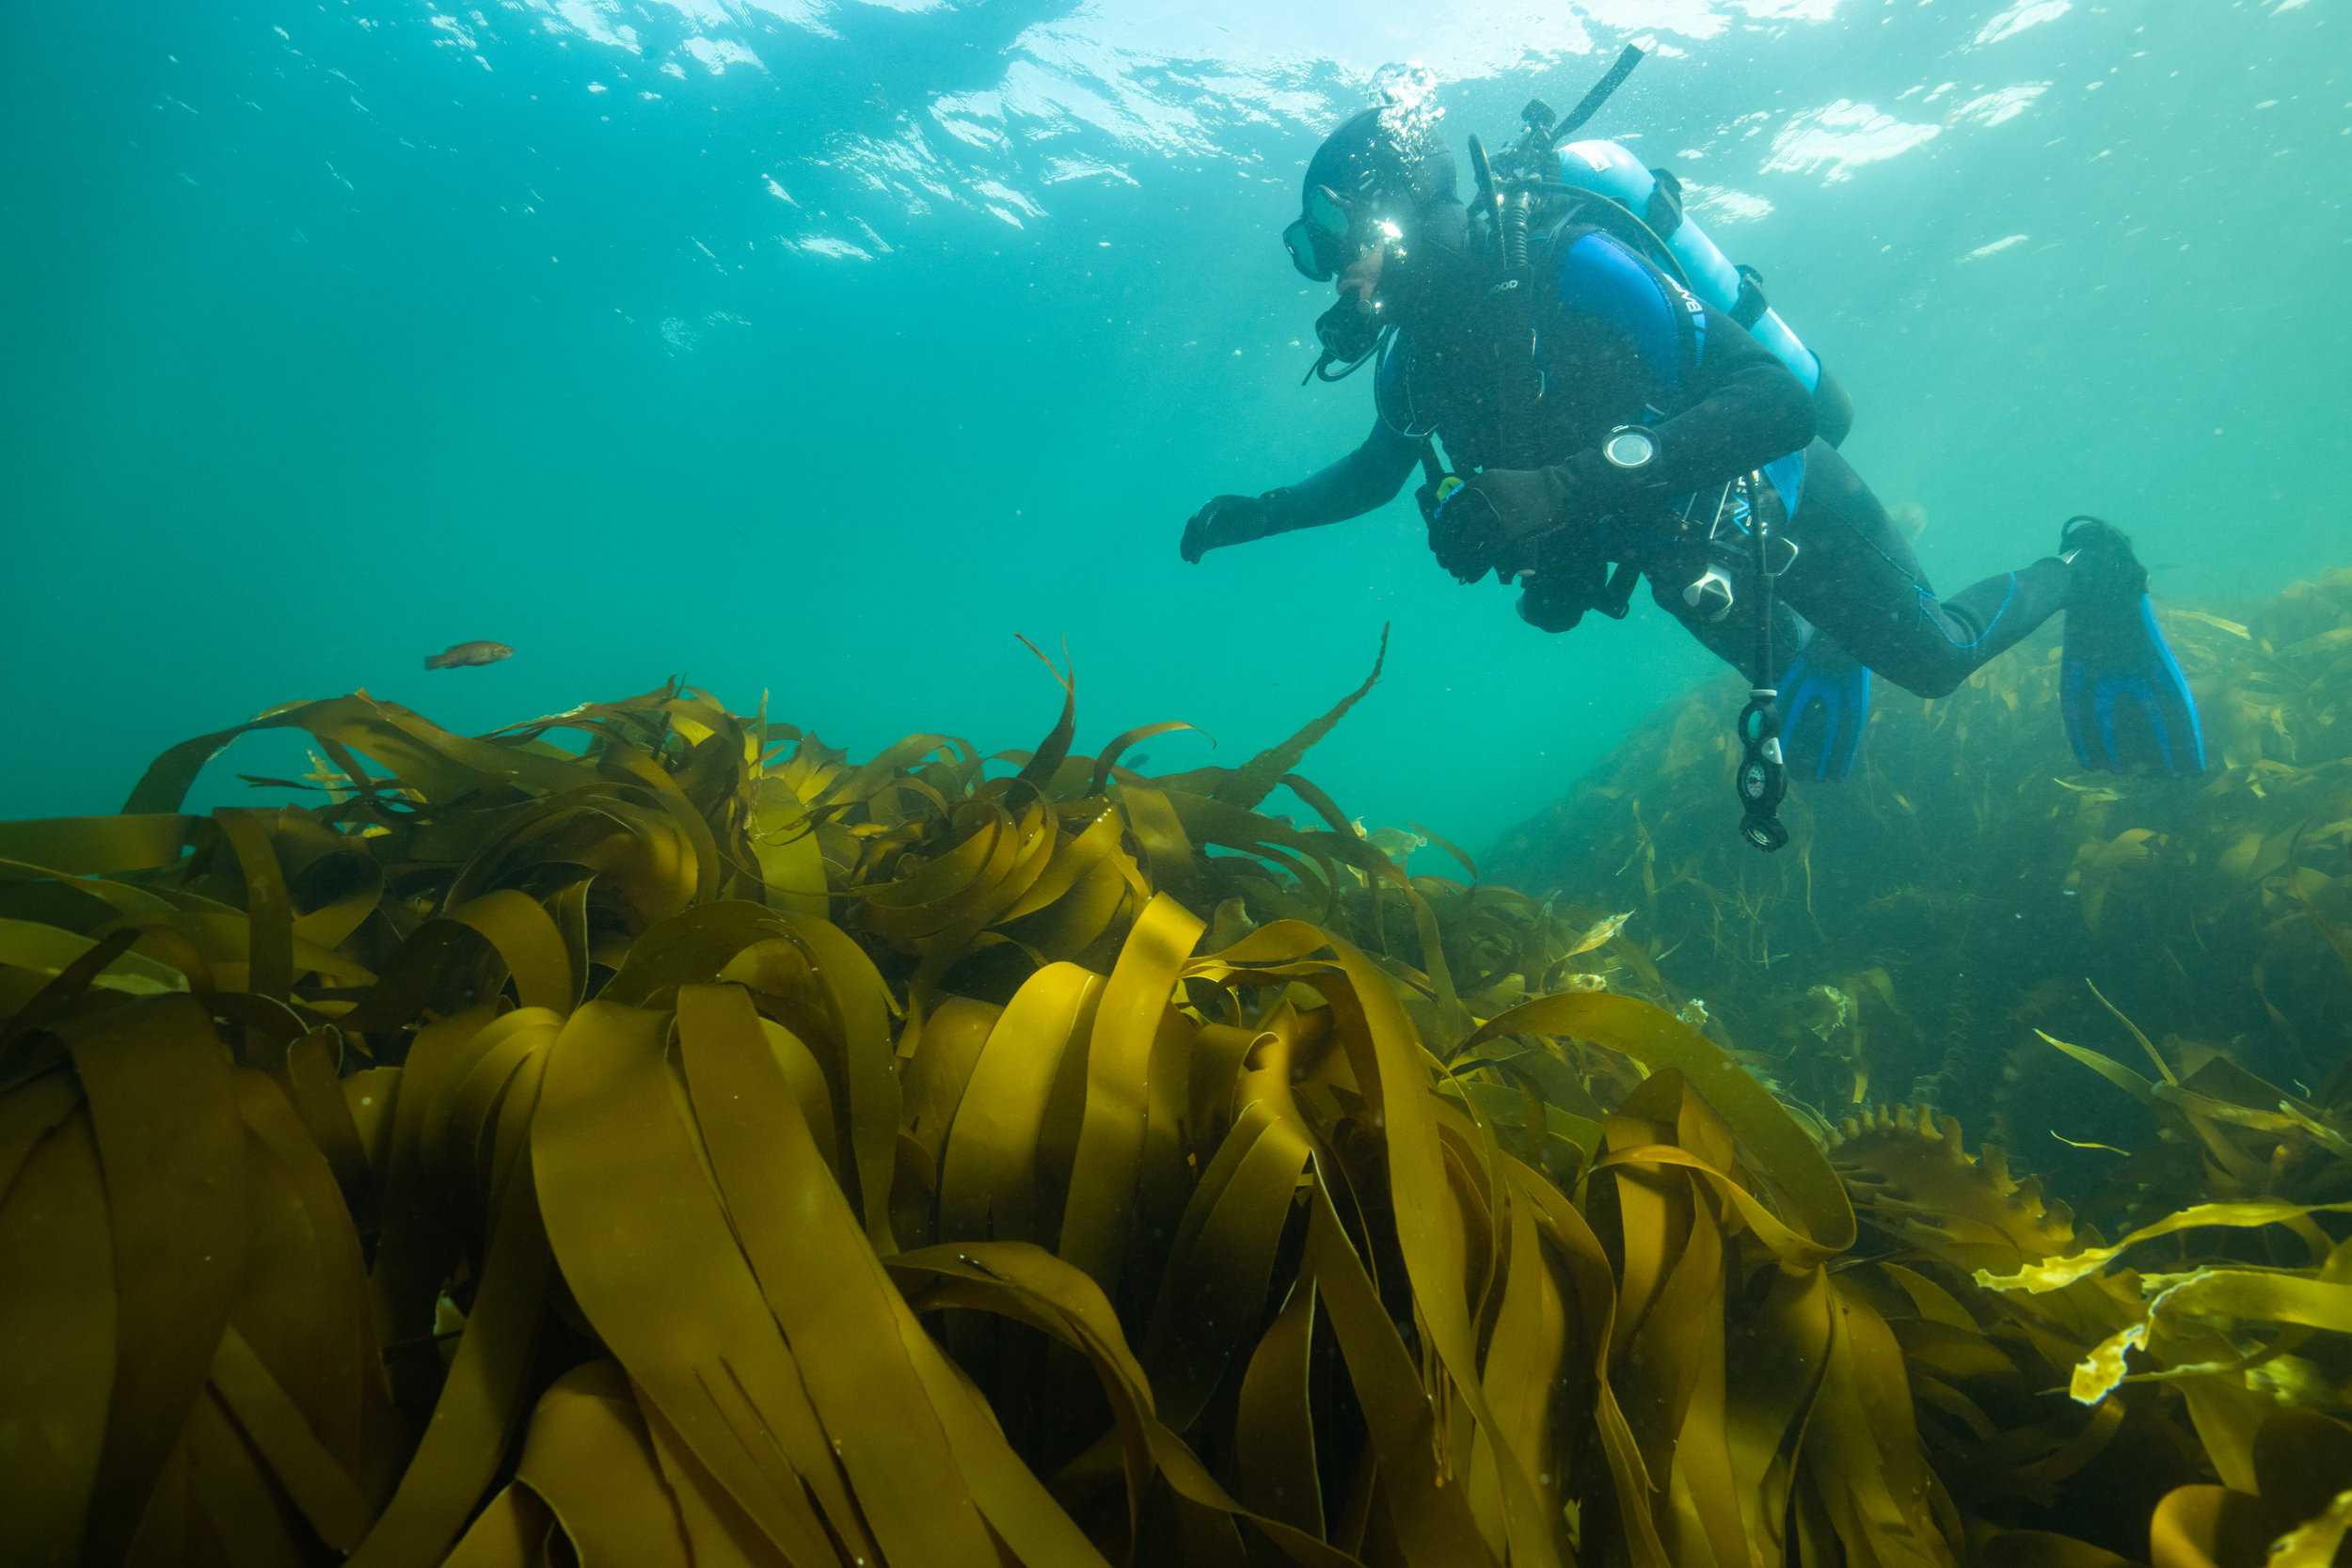 Diving in kelp beds on Nova Scotia's Eastern Shore